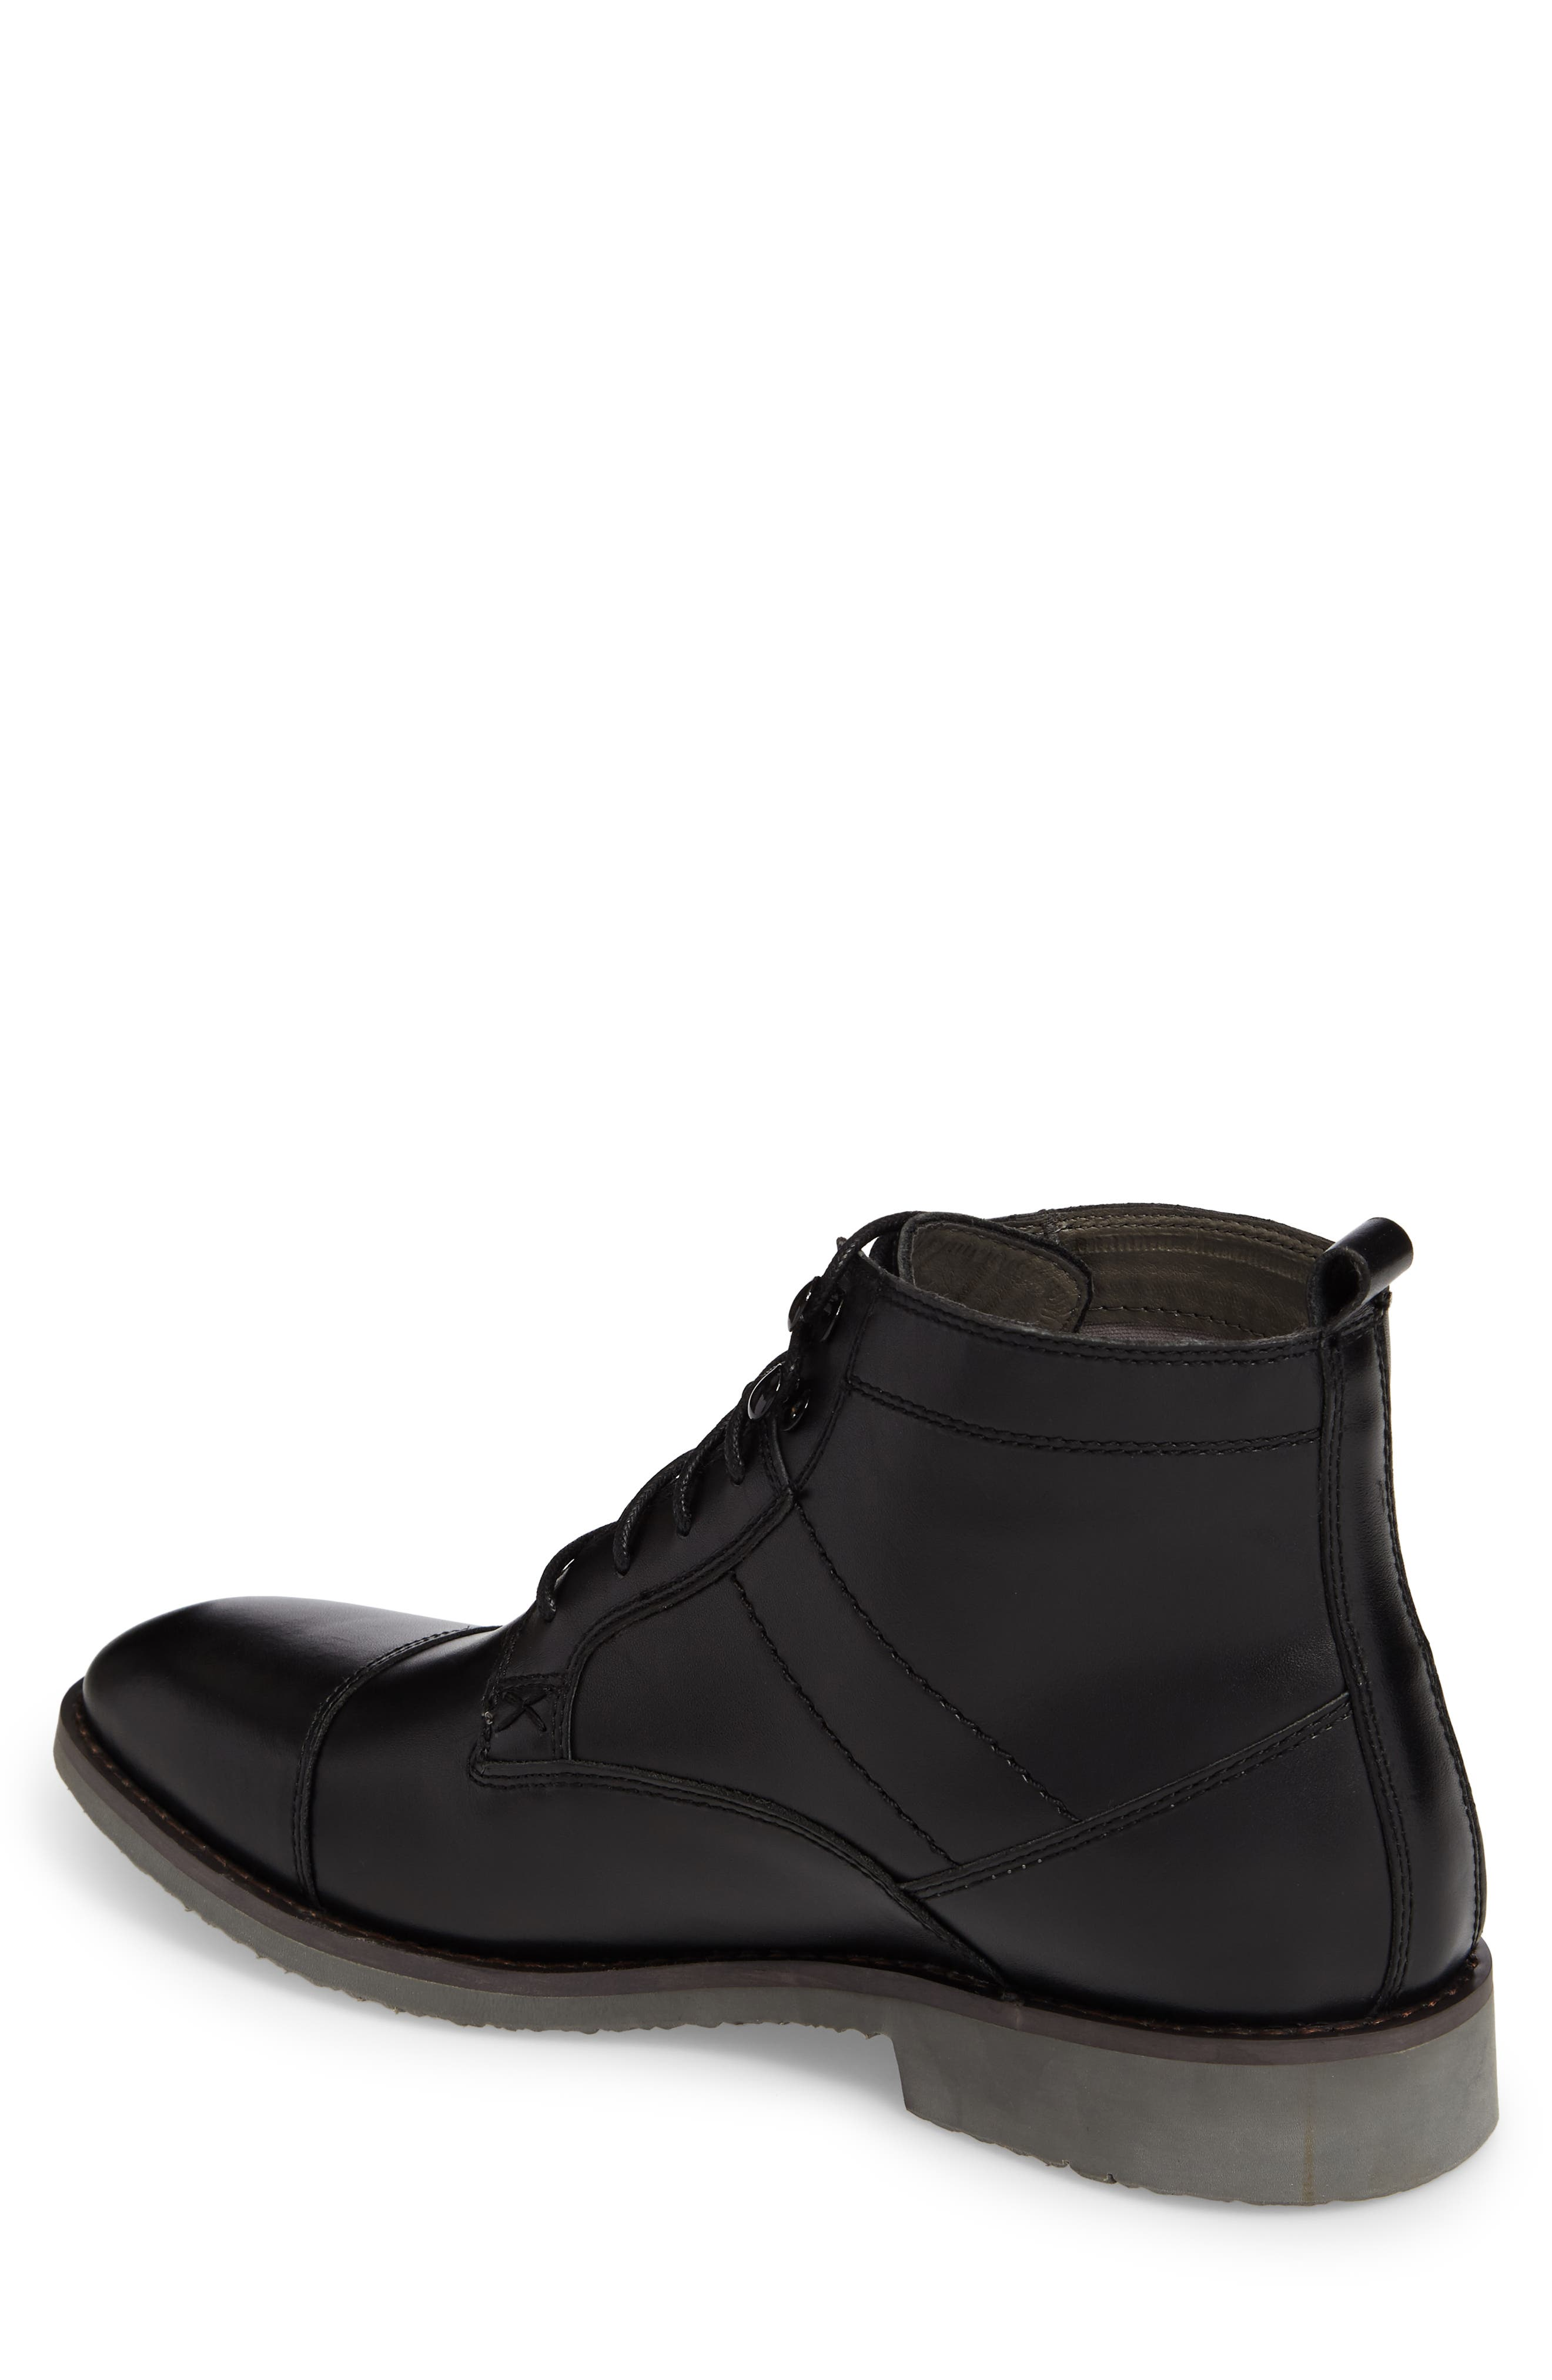 Alternate Image 2  - English Laundry Ensor Cap Toe Boot (Men)